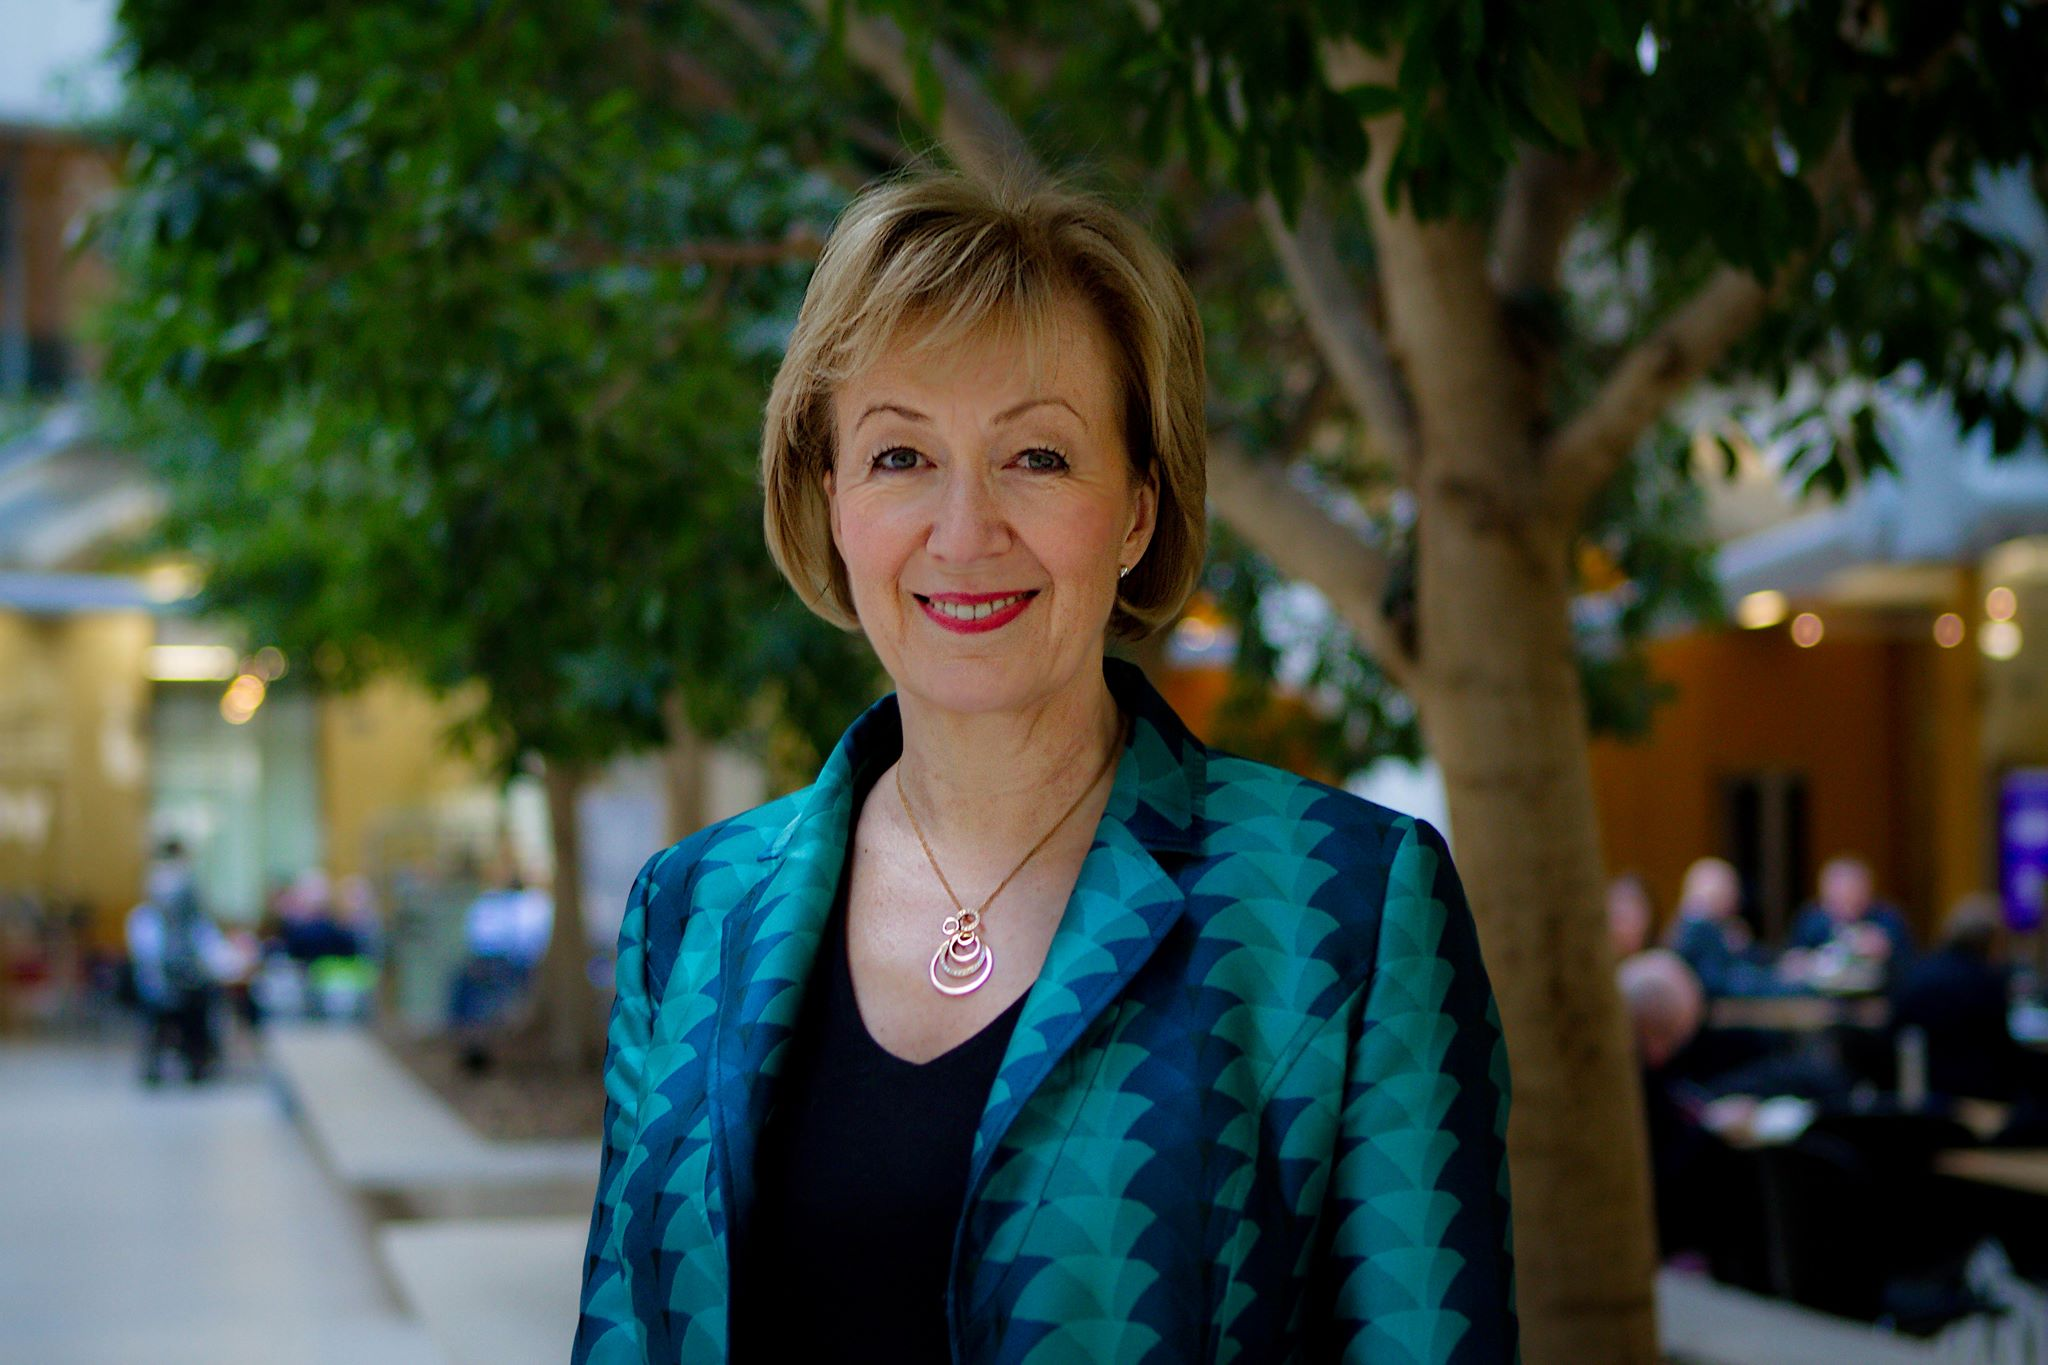 Iron Lady, she wasn't. Andrea Leadsom dropped out of the Tory leadership race after just four days. (Facebook)